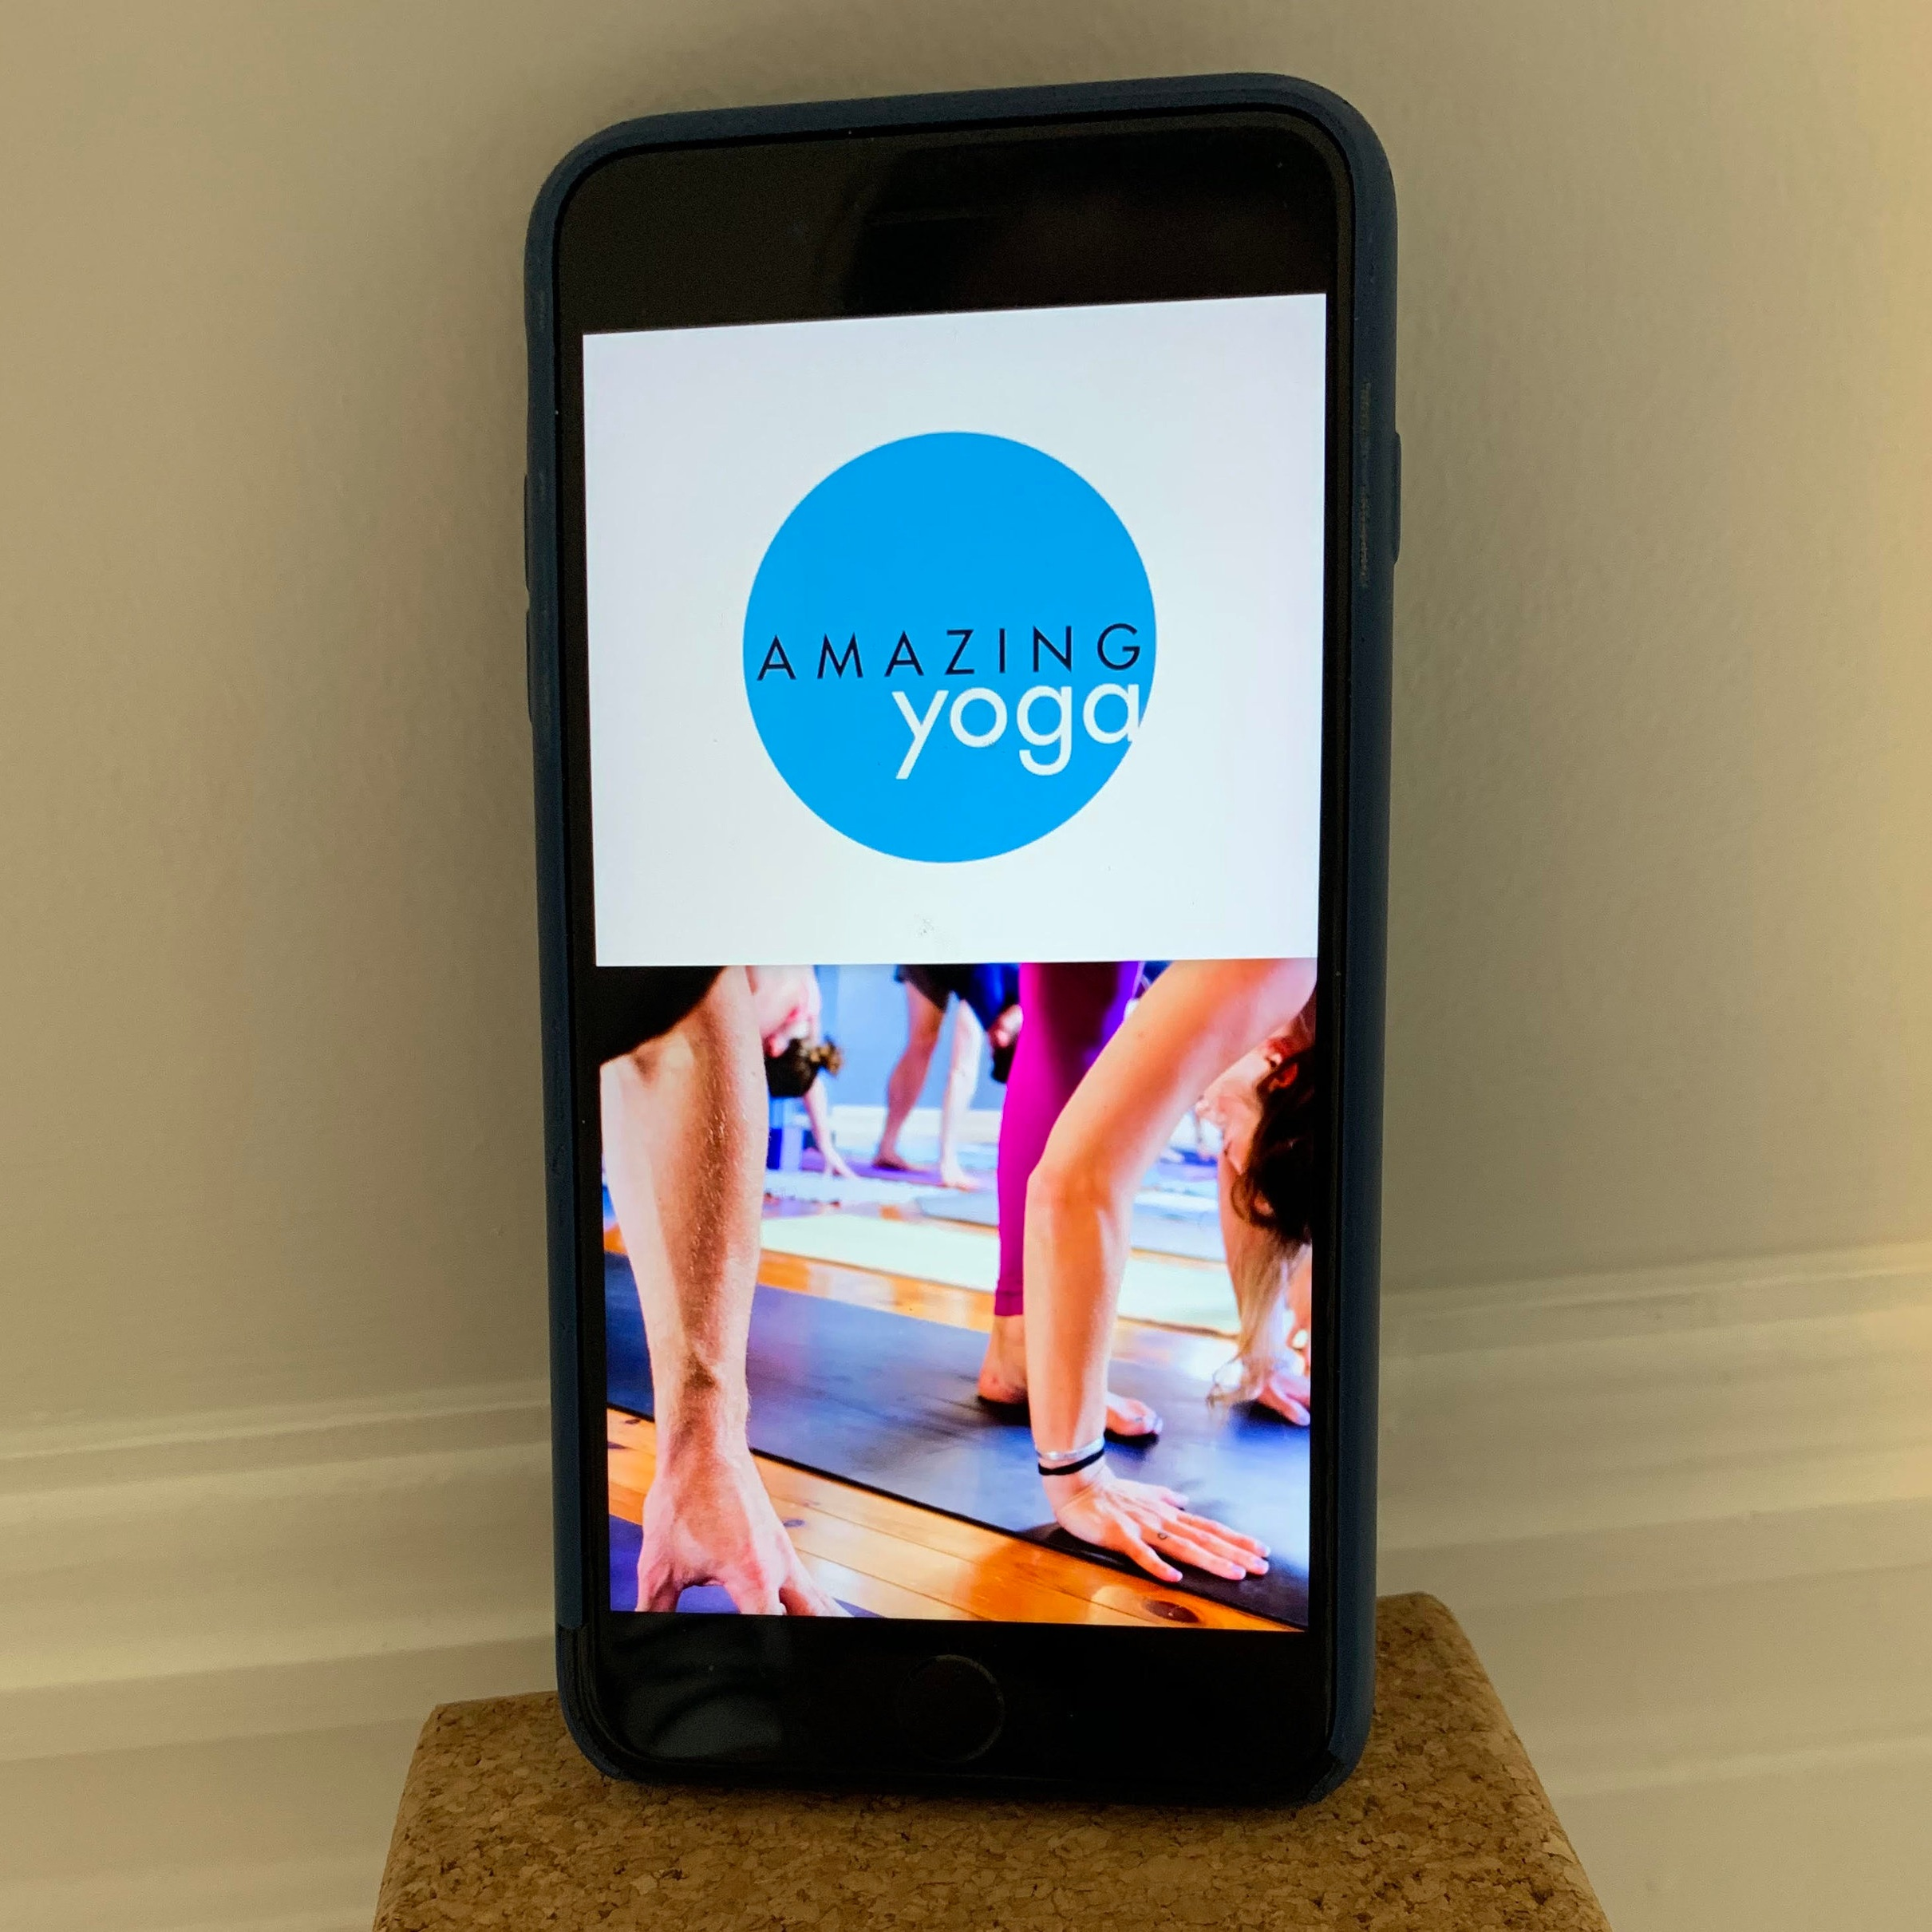 Amazing Yoga App - Connect to the daily class schedule and purchase class passes right from your phone or tablet.